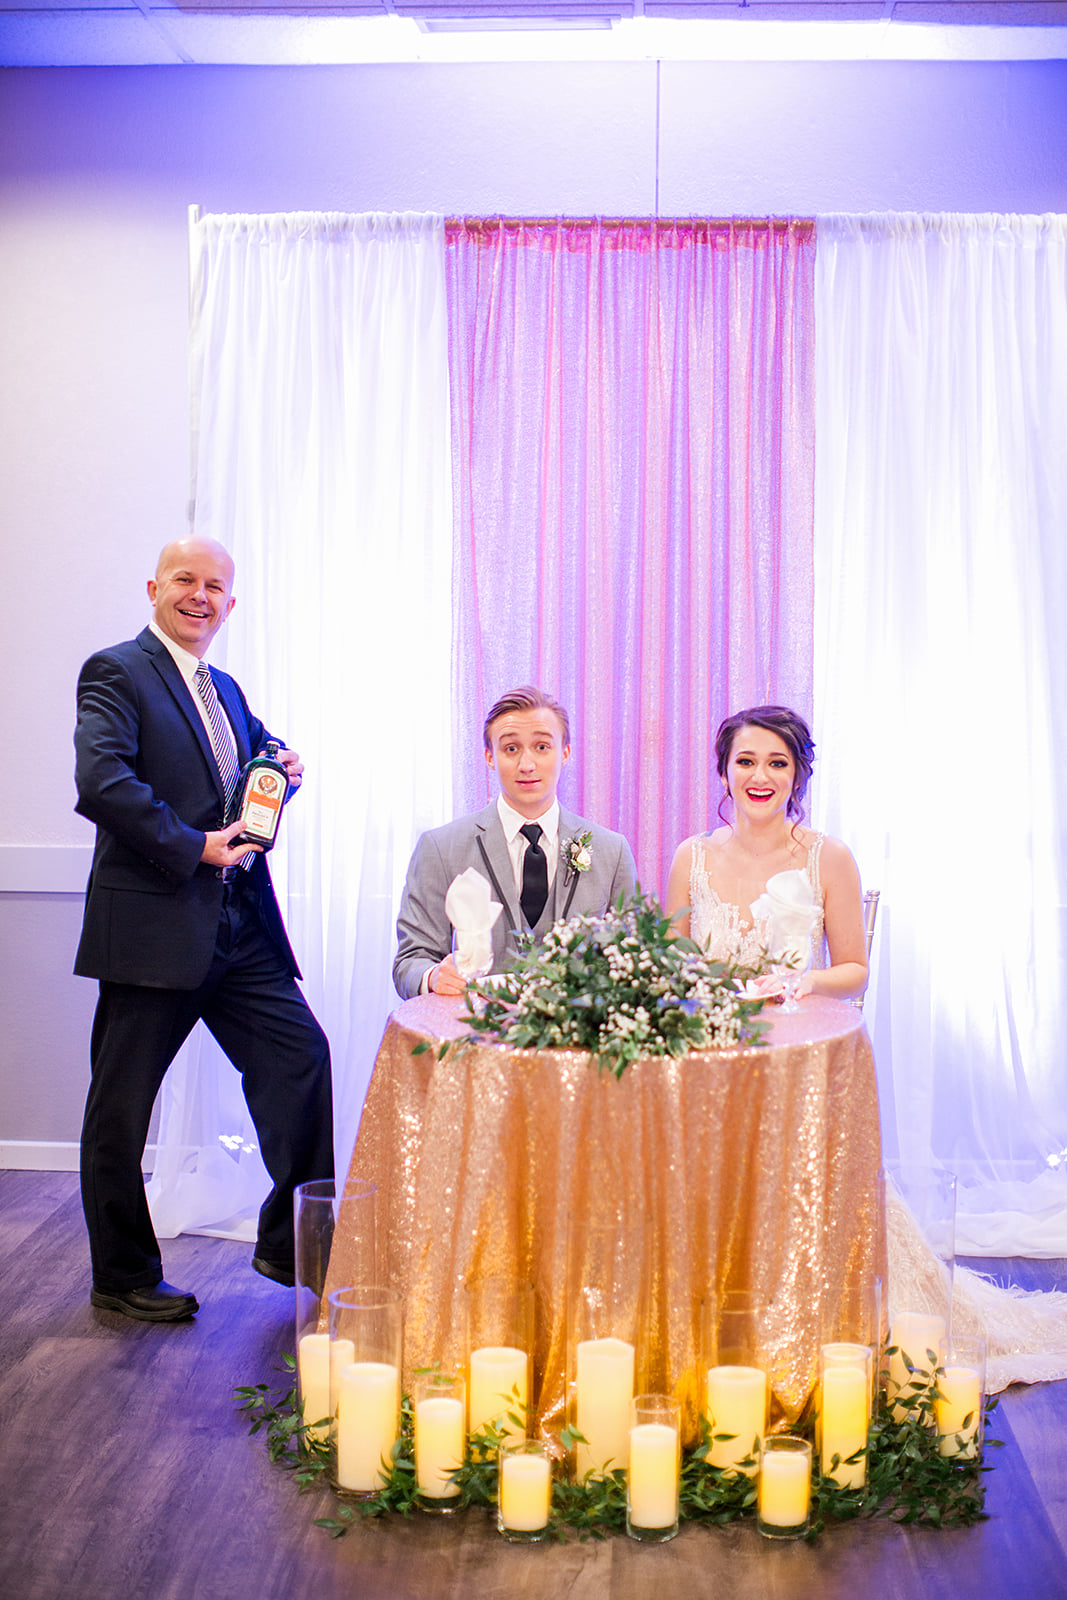 George Maverick and the happy wedding couple - affordable wedding in south metro Minnesota | photo by Rachel Graff Photography